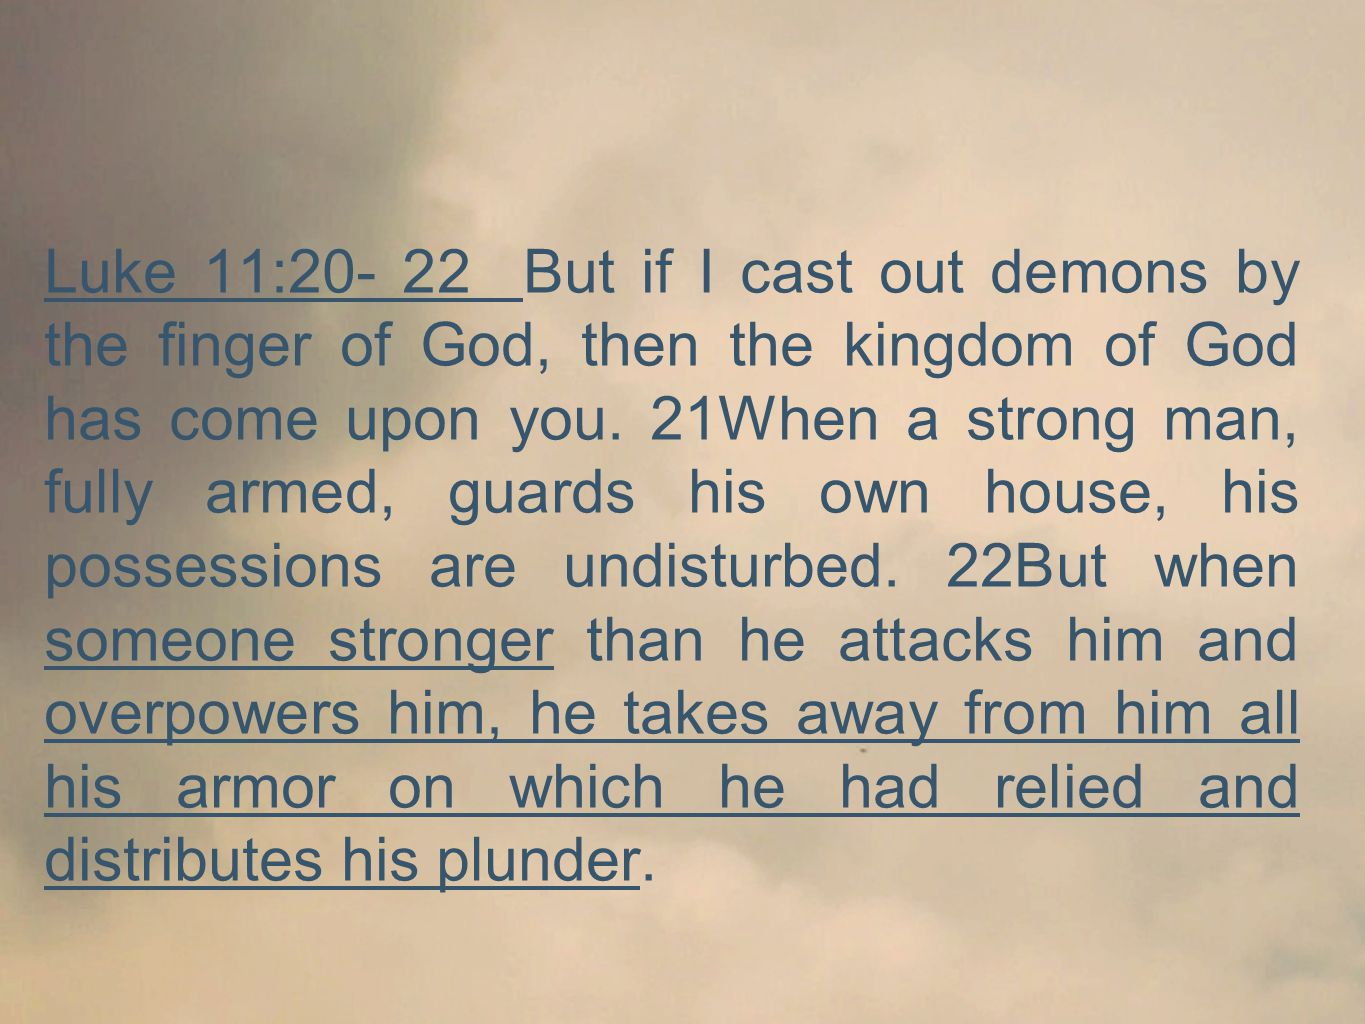 Luke 11:20- 22 But if I cast out demons by the finger of God, then the kingdom of God has come upon you.